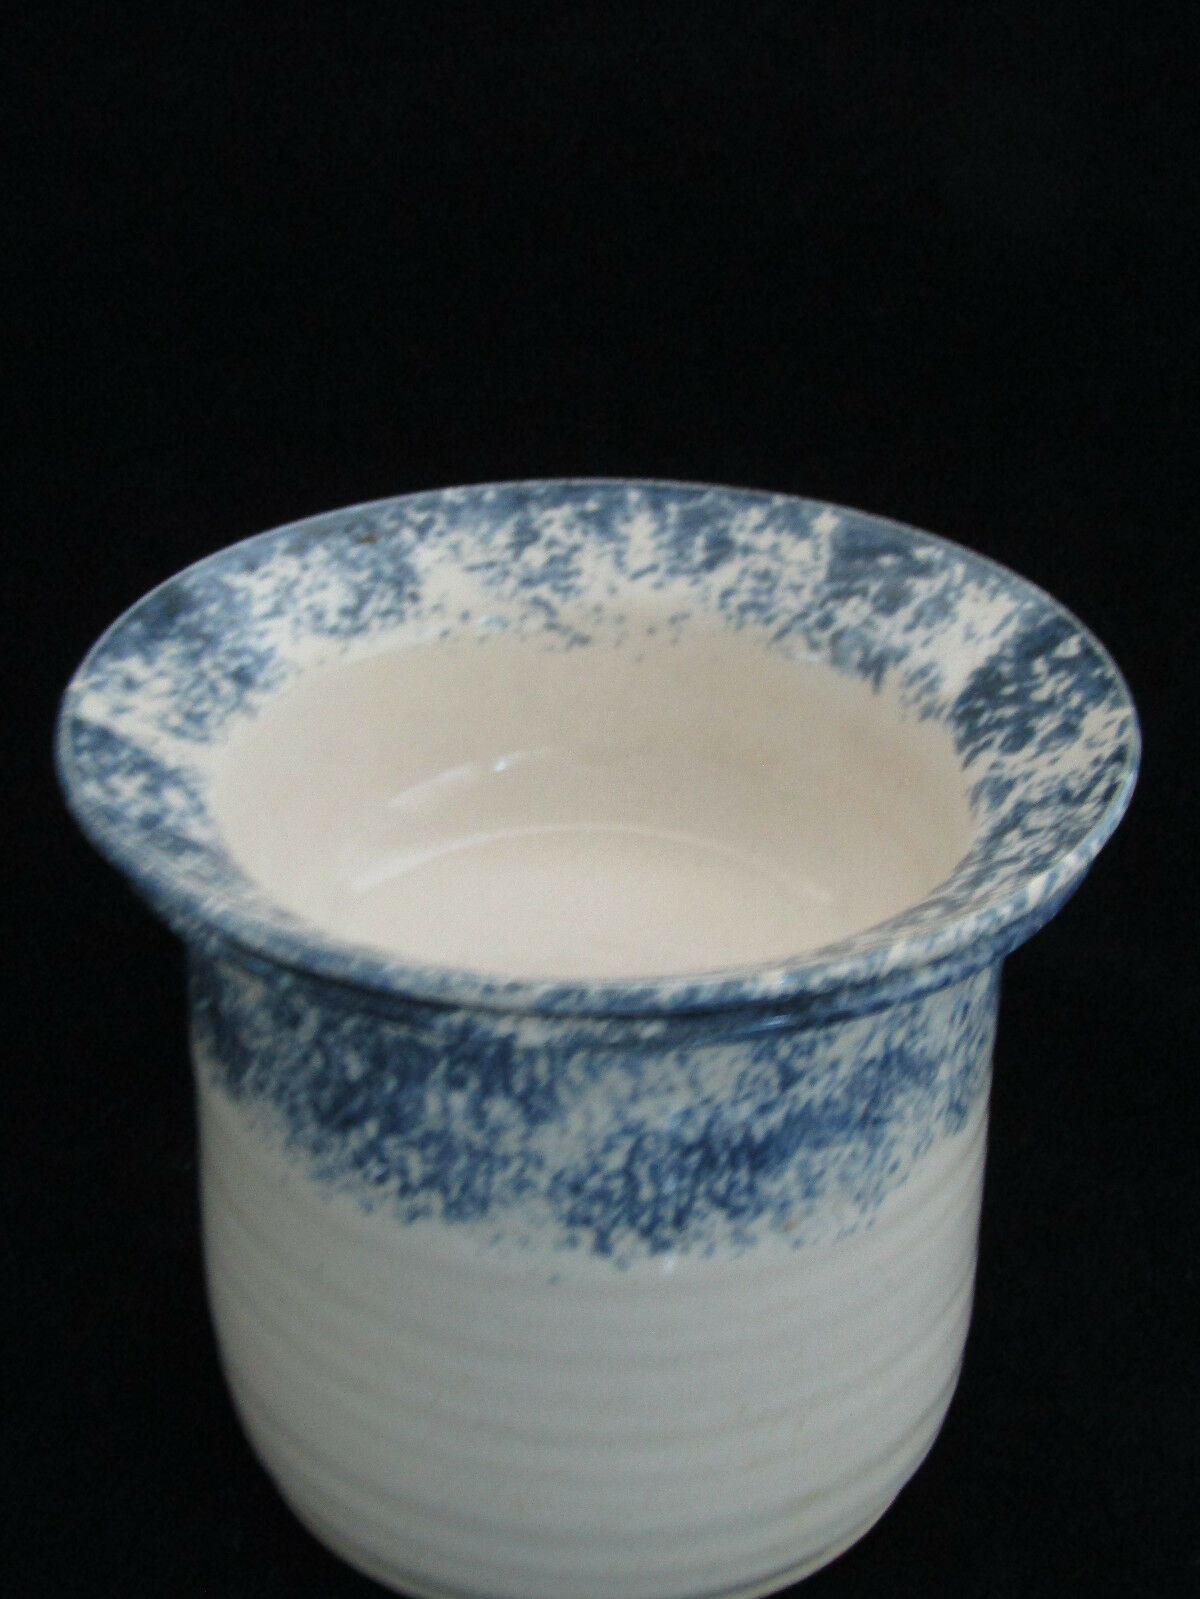 Studio Crafted White Blue Pottery Dip Cheeseball Chiller 2 Piece Server Set - $24.99